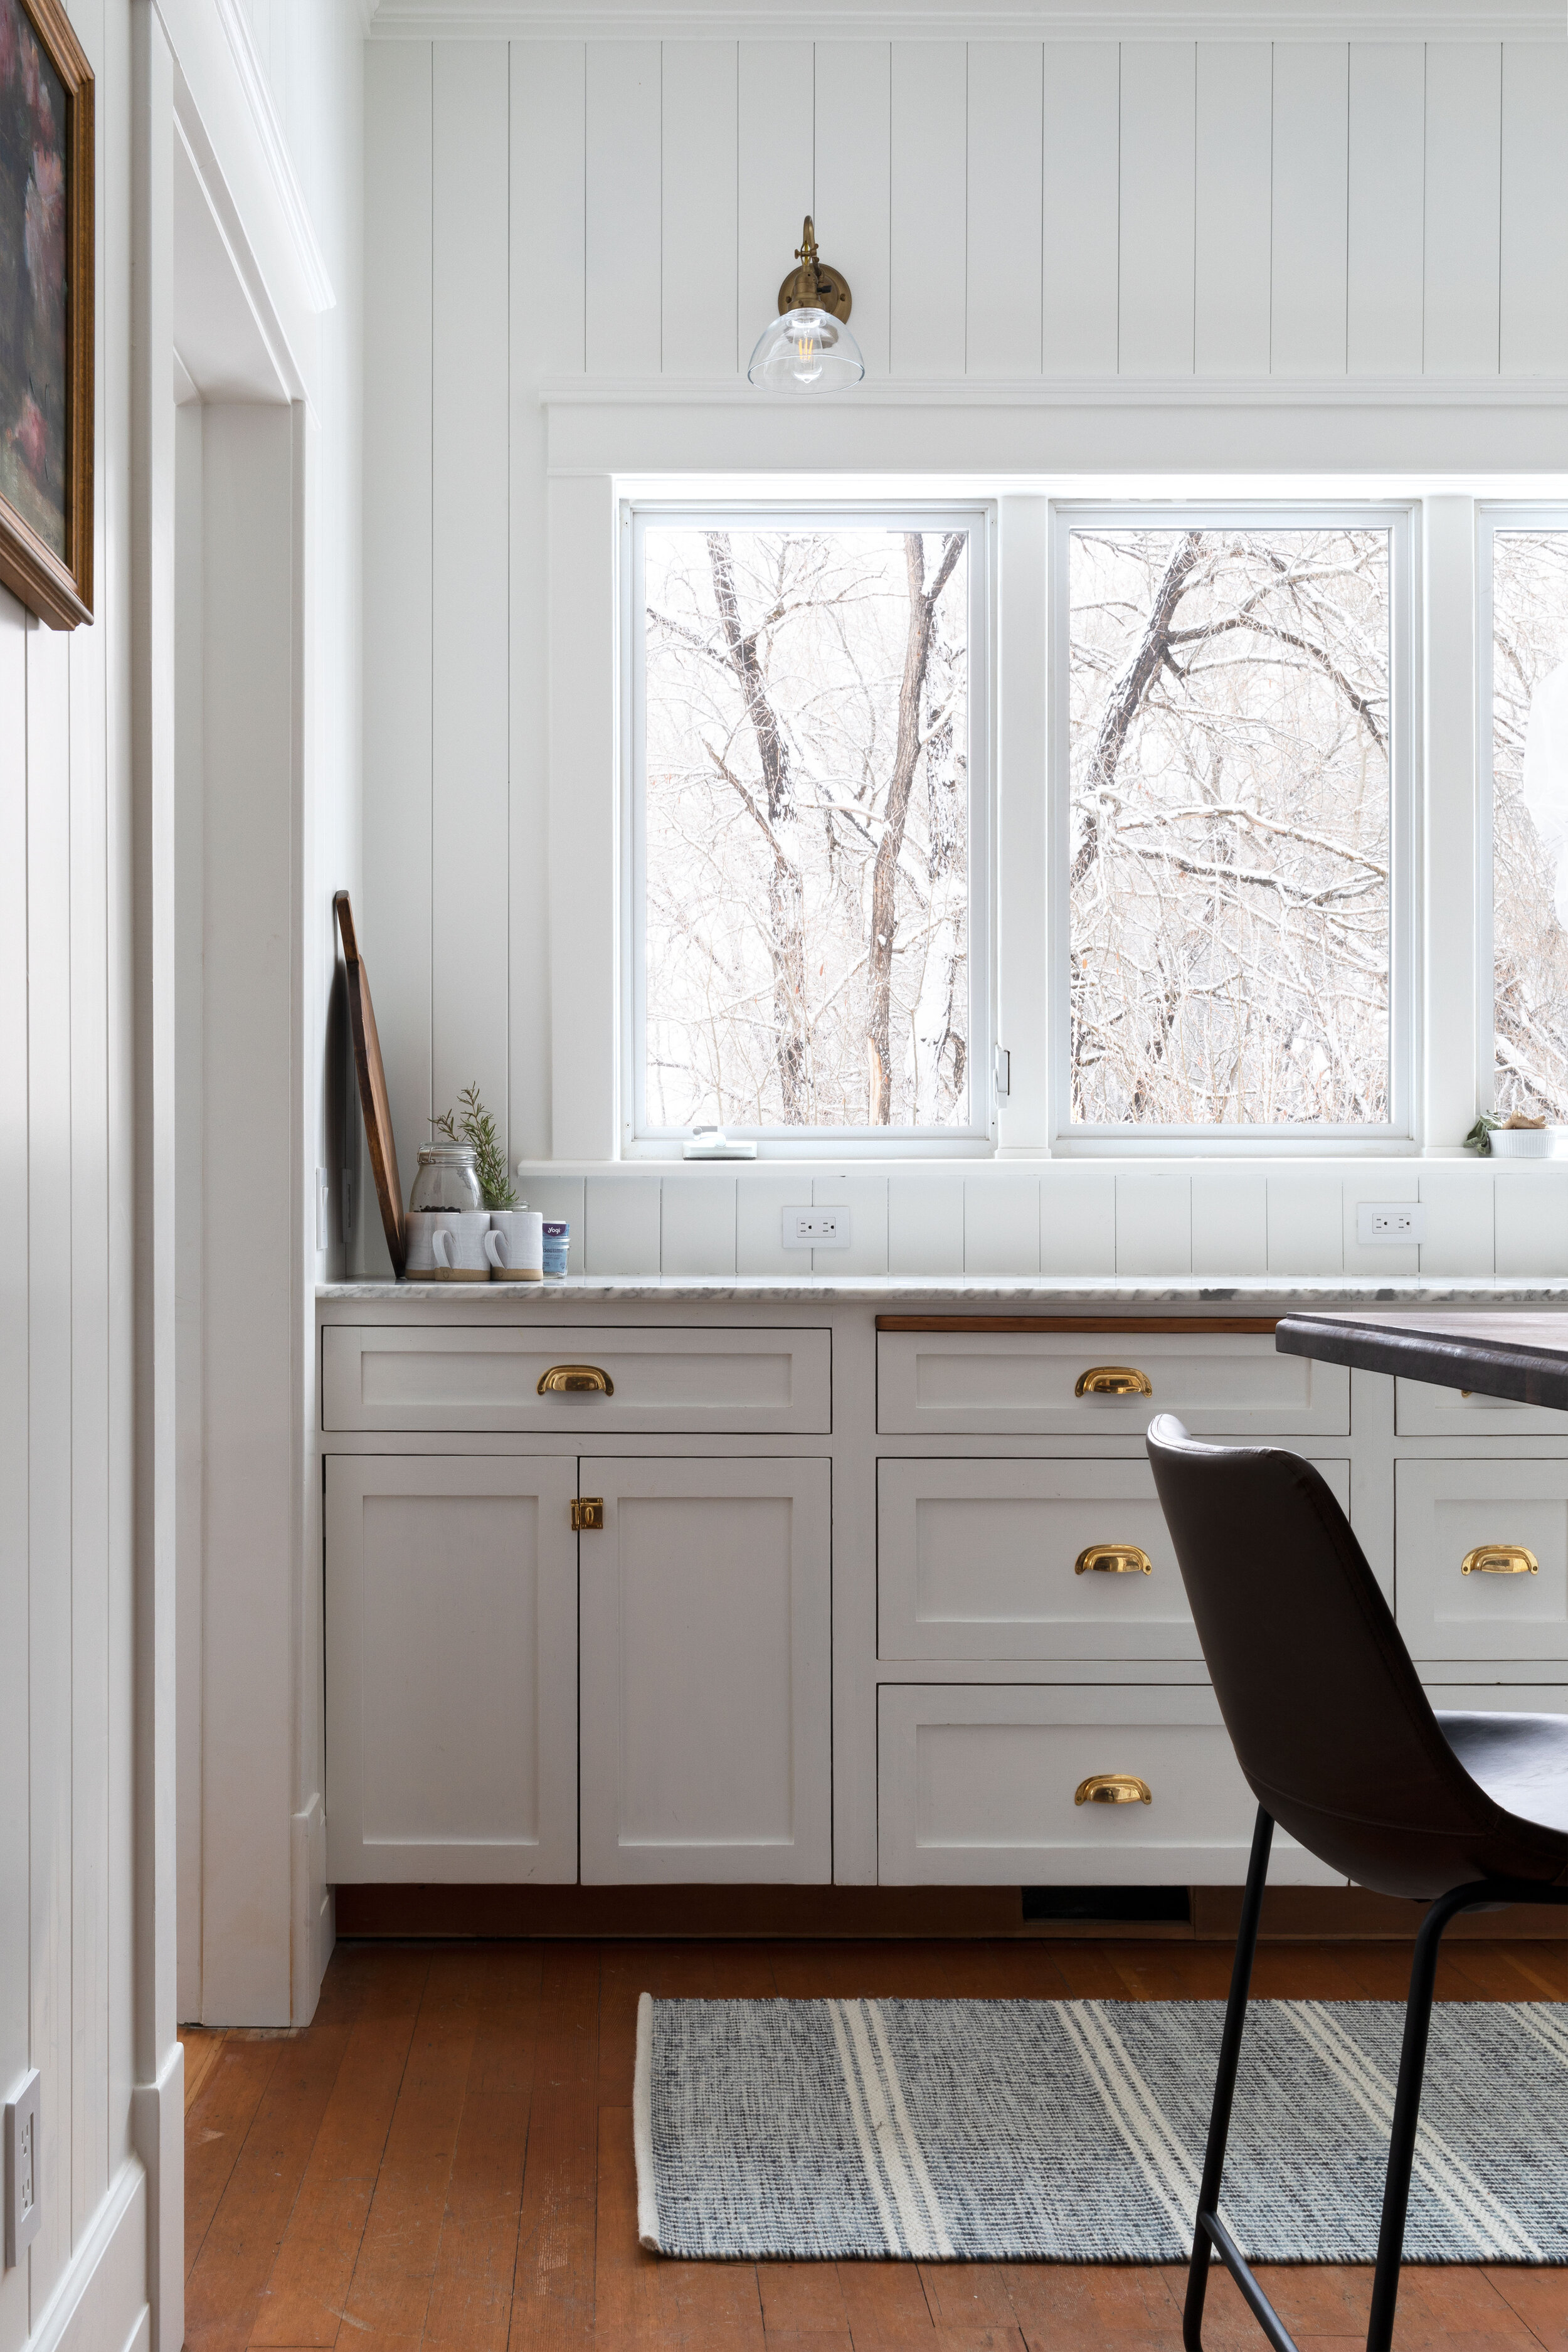 The Grit and Polish - Farmhouse Country Kitchen Reveal 3.0 6 web.jpg